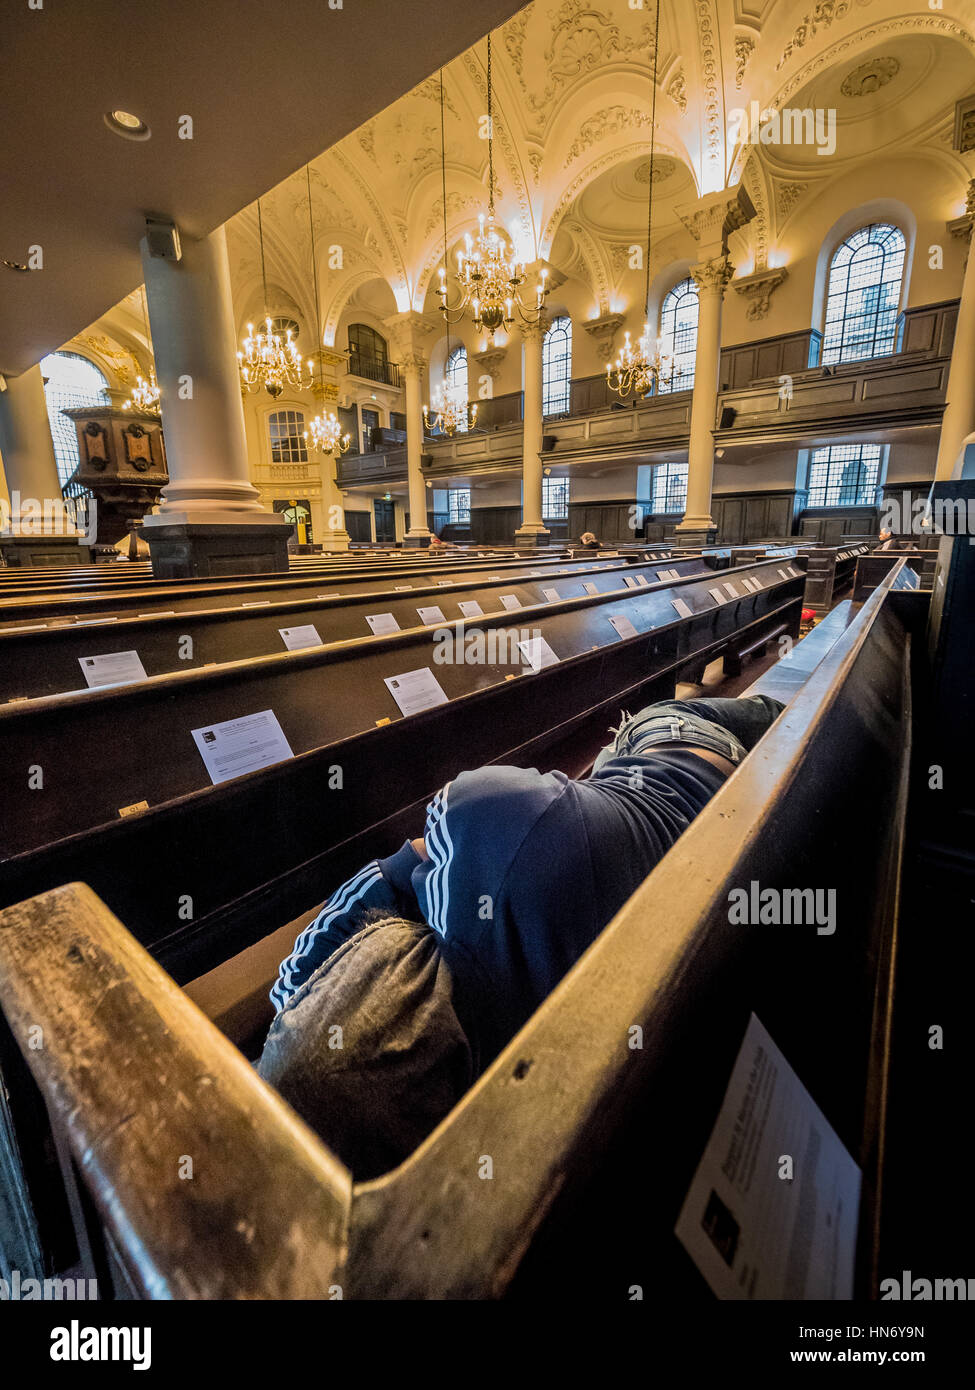 Homeless person sleeping in pews of St Martin-in-the-Fields, English Anglican church at the north-east corner of Stock Photo